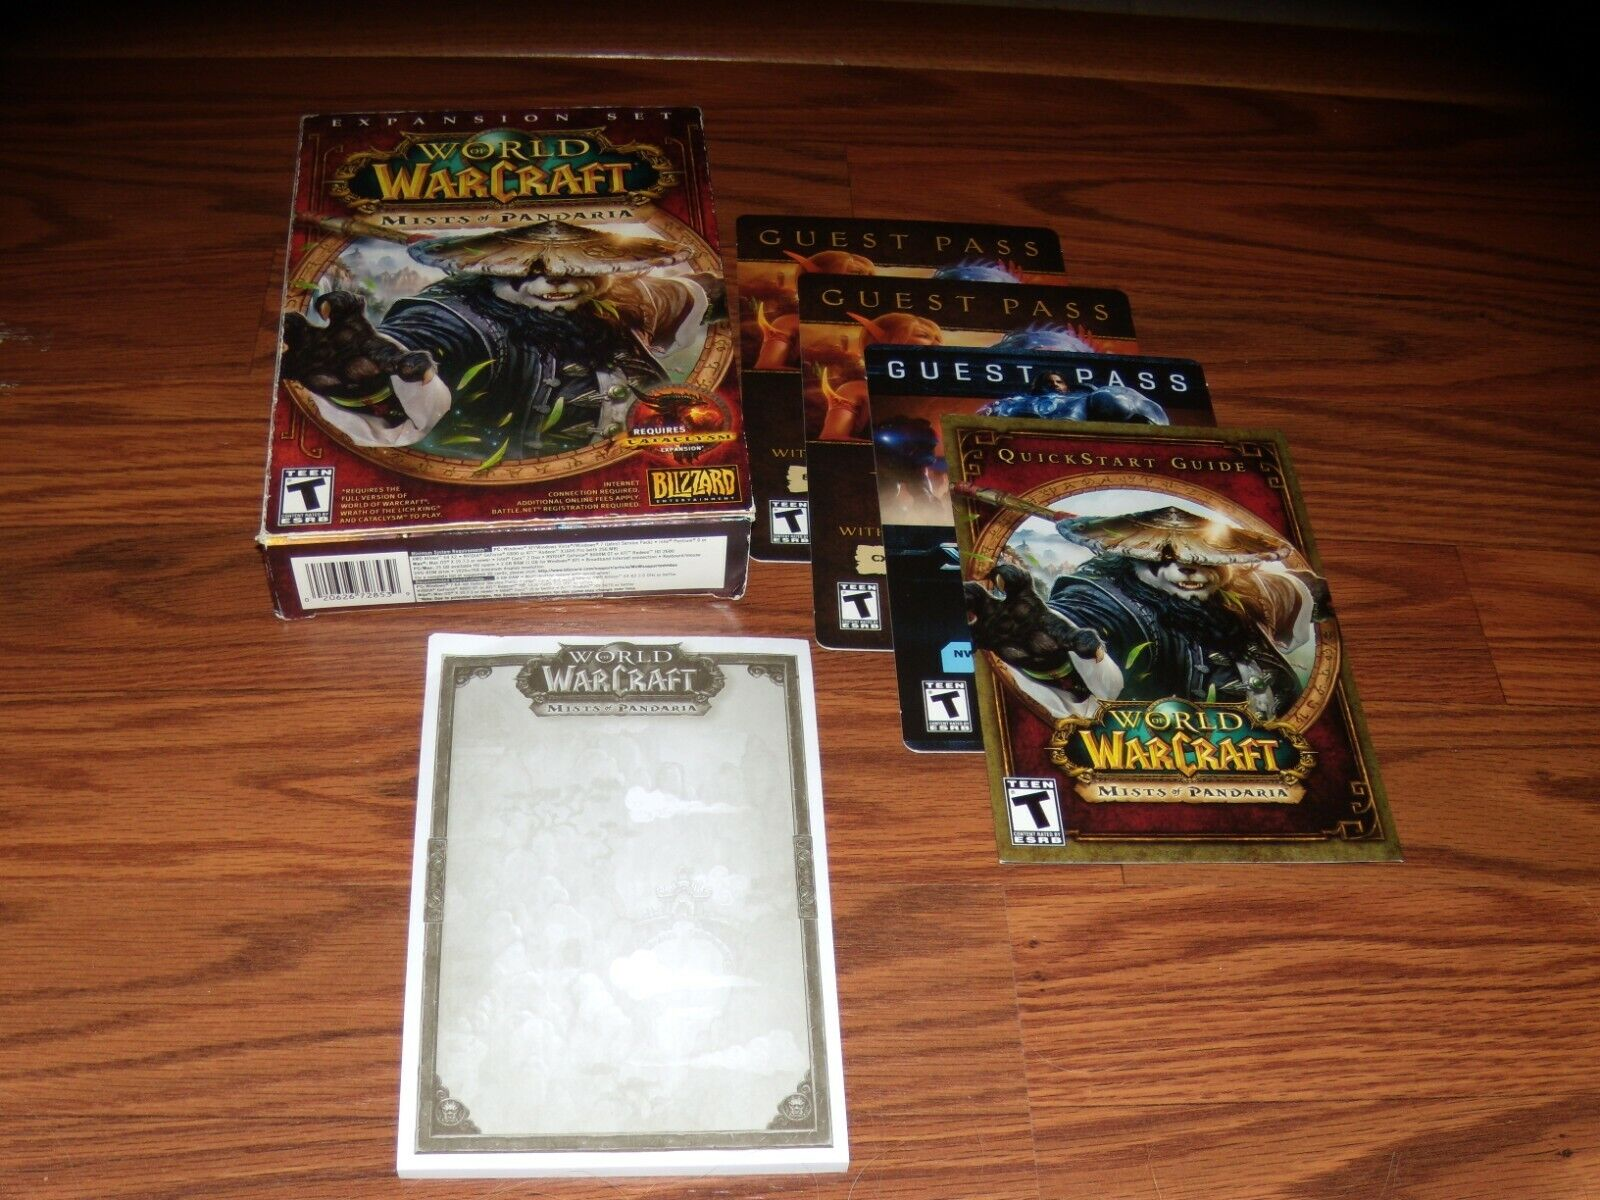 World Of Warcraft Mists Of Pandaria With Box And Pictured Items - No Game - $2.00